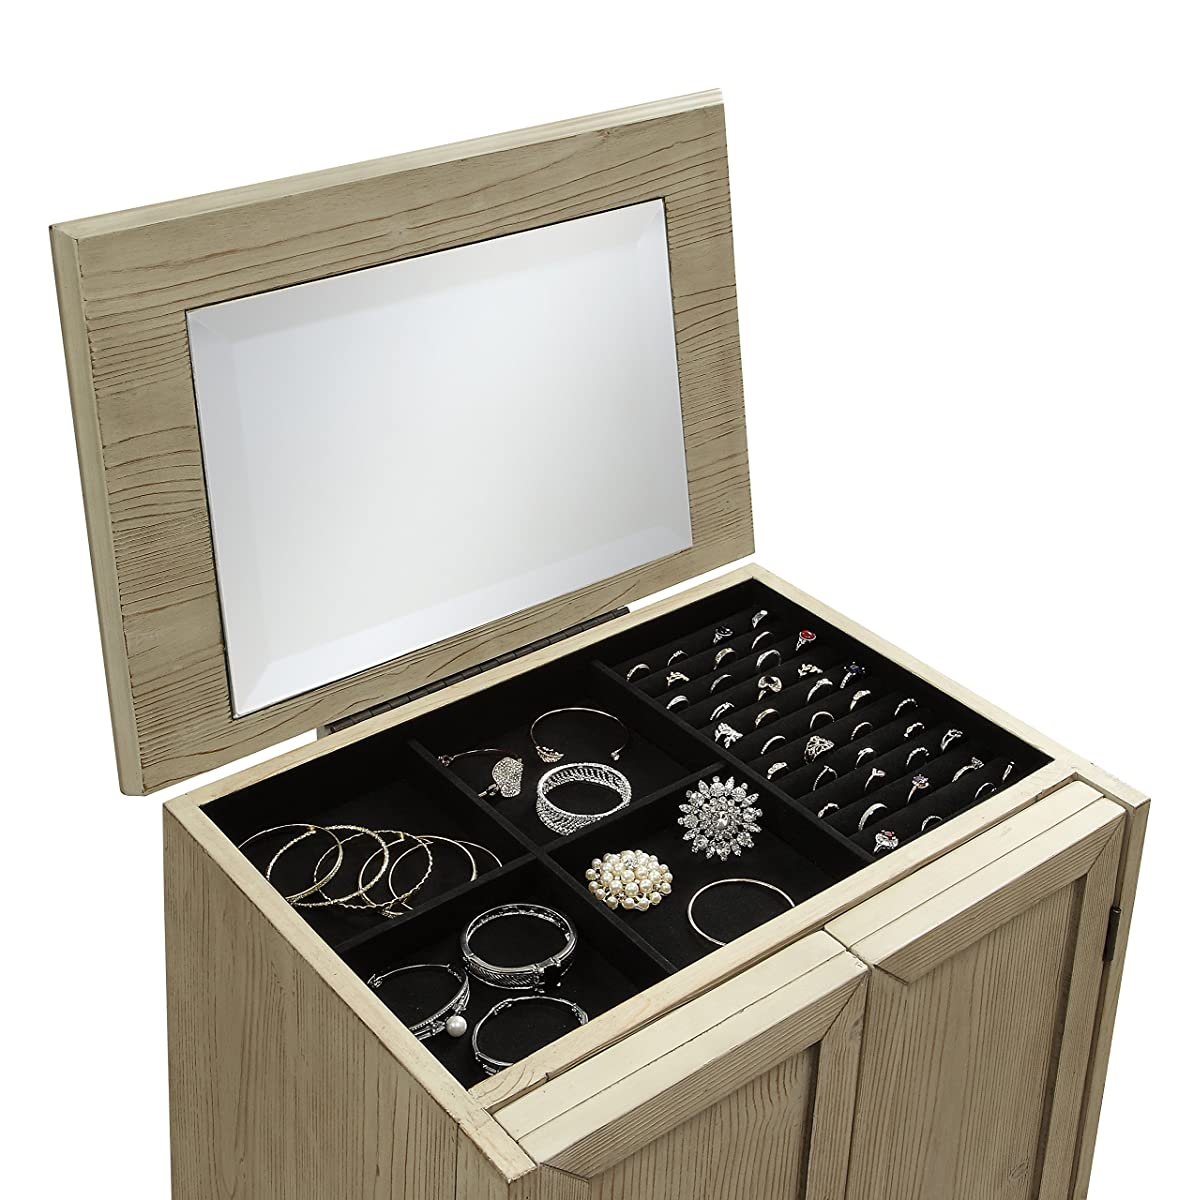 Exclusive 2 Door Large Jewelry Armoire Organizer Cabinet by Kathy Ireland Home from Abington Lane